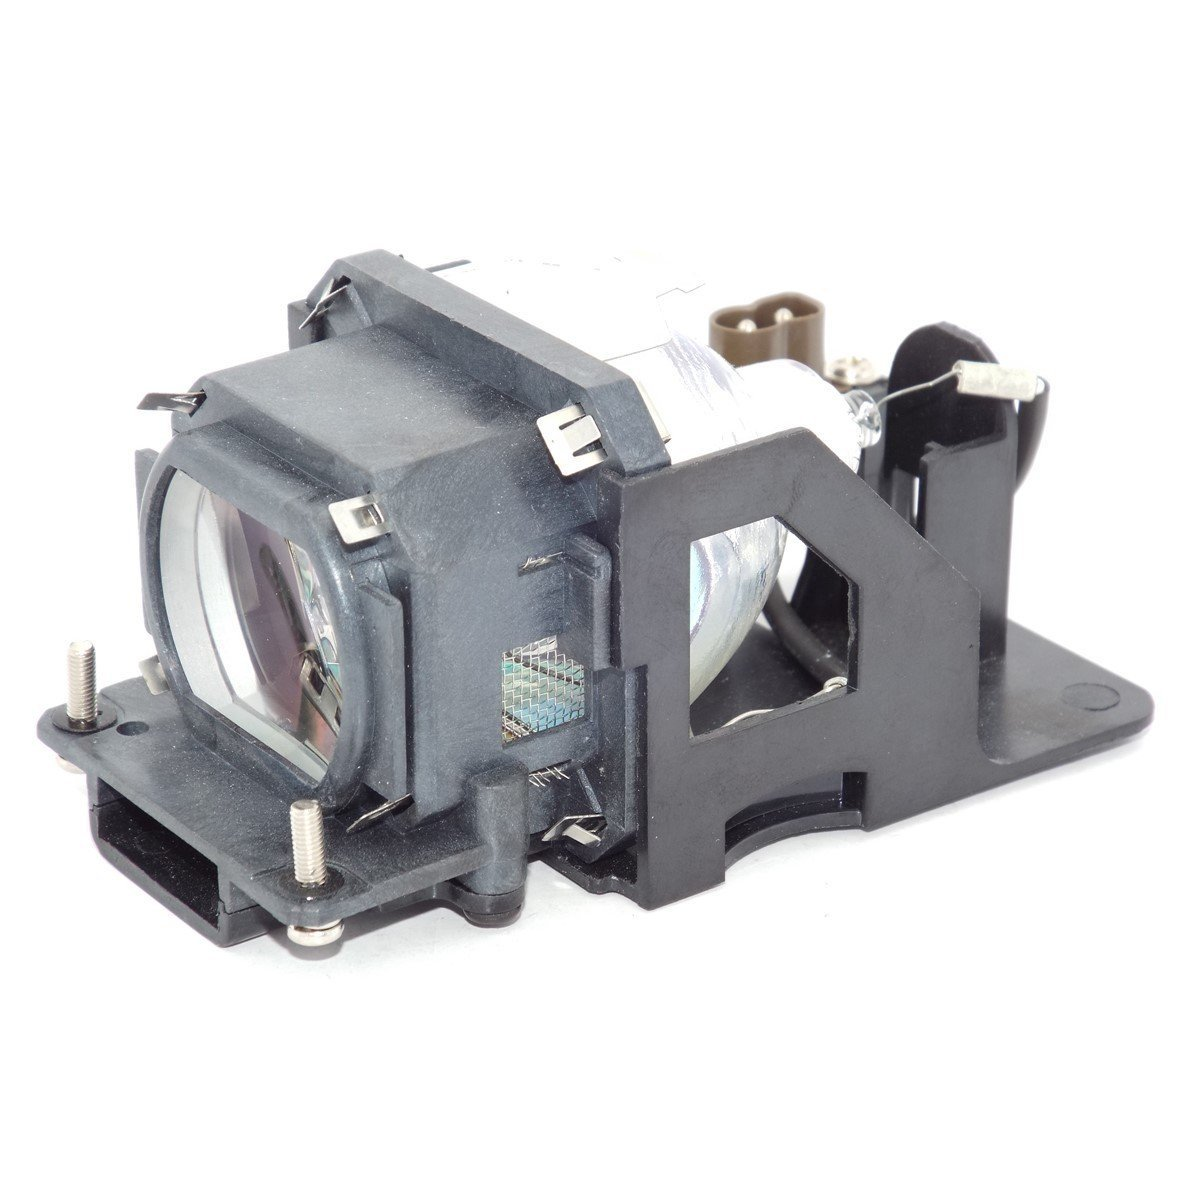 ET-LAB50 For Panasonic PT-LB50 PT-LB50SU PT-LB50U PT-LB50E PT-LB50NTE PT-LB51 PT-LB51E PT-LB51U Projector Lamp Bulb With Housing et lab50 for panasonic pt lb50 pt lb50su pt lb50u pt lb50e pt lb50nte pt lb51 pt lb51e pt lb51u projector lamp bulb with housing